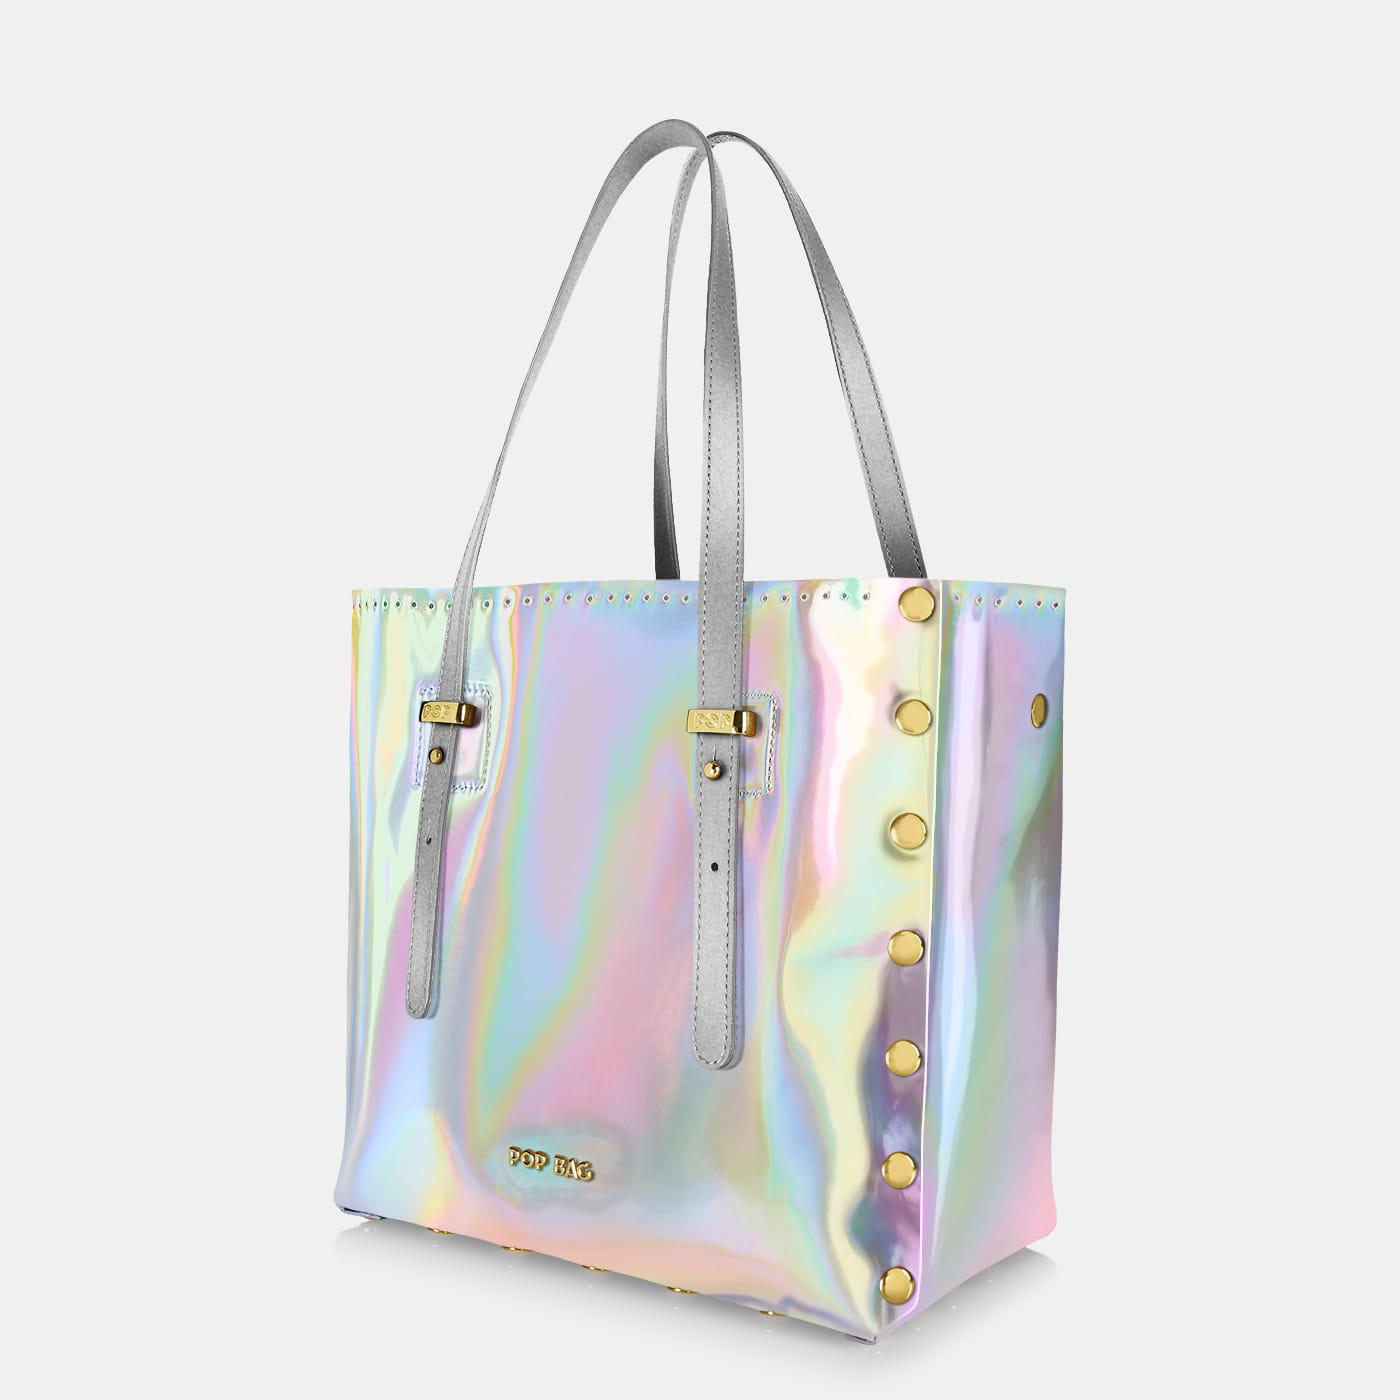 Pop Aurora Bag - Pearl Iridescent - Medium - Side View